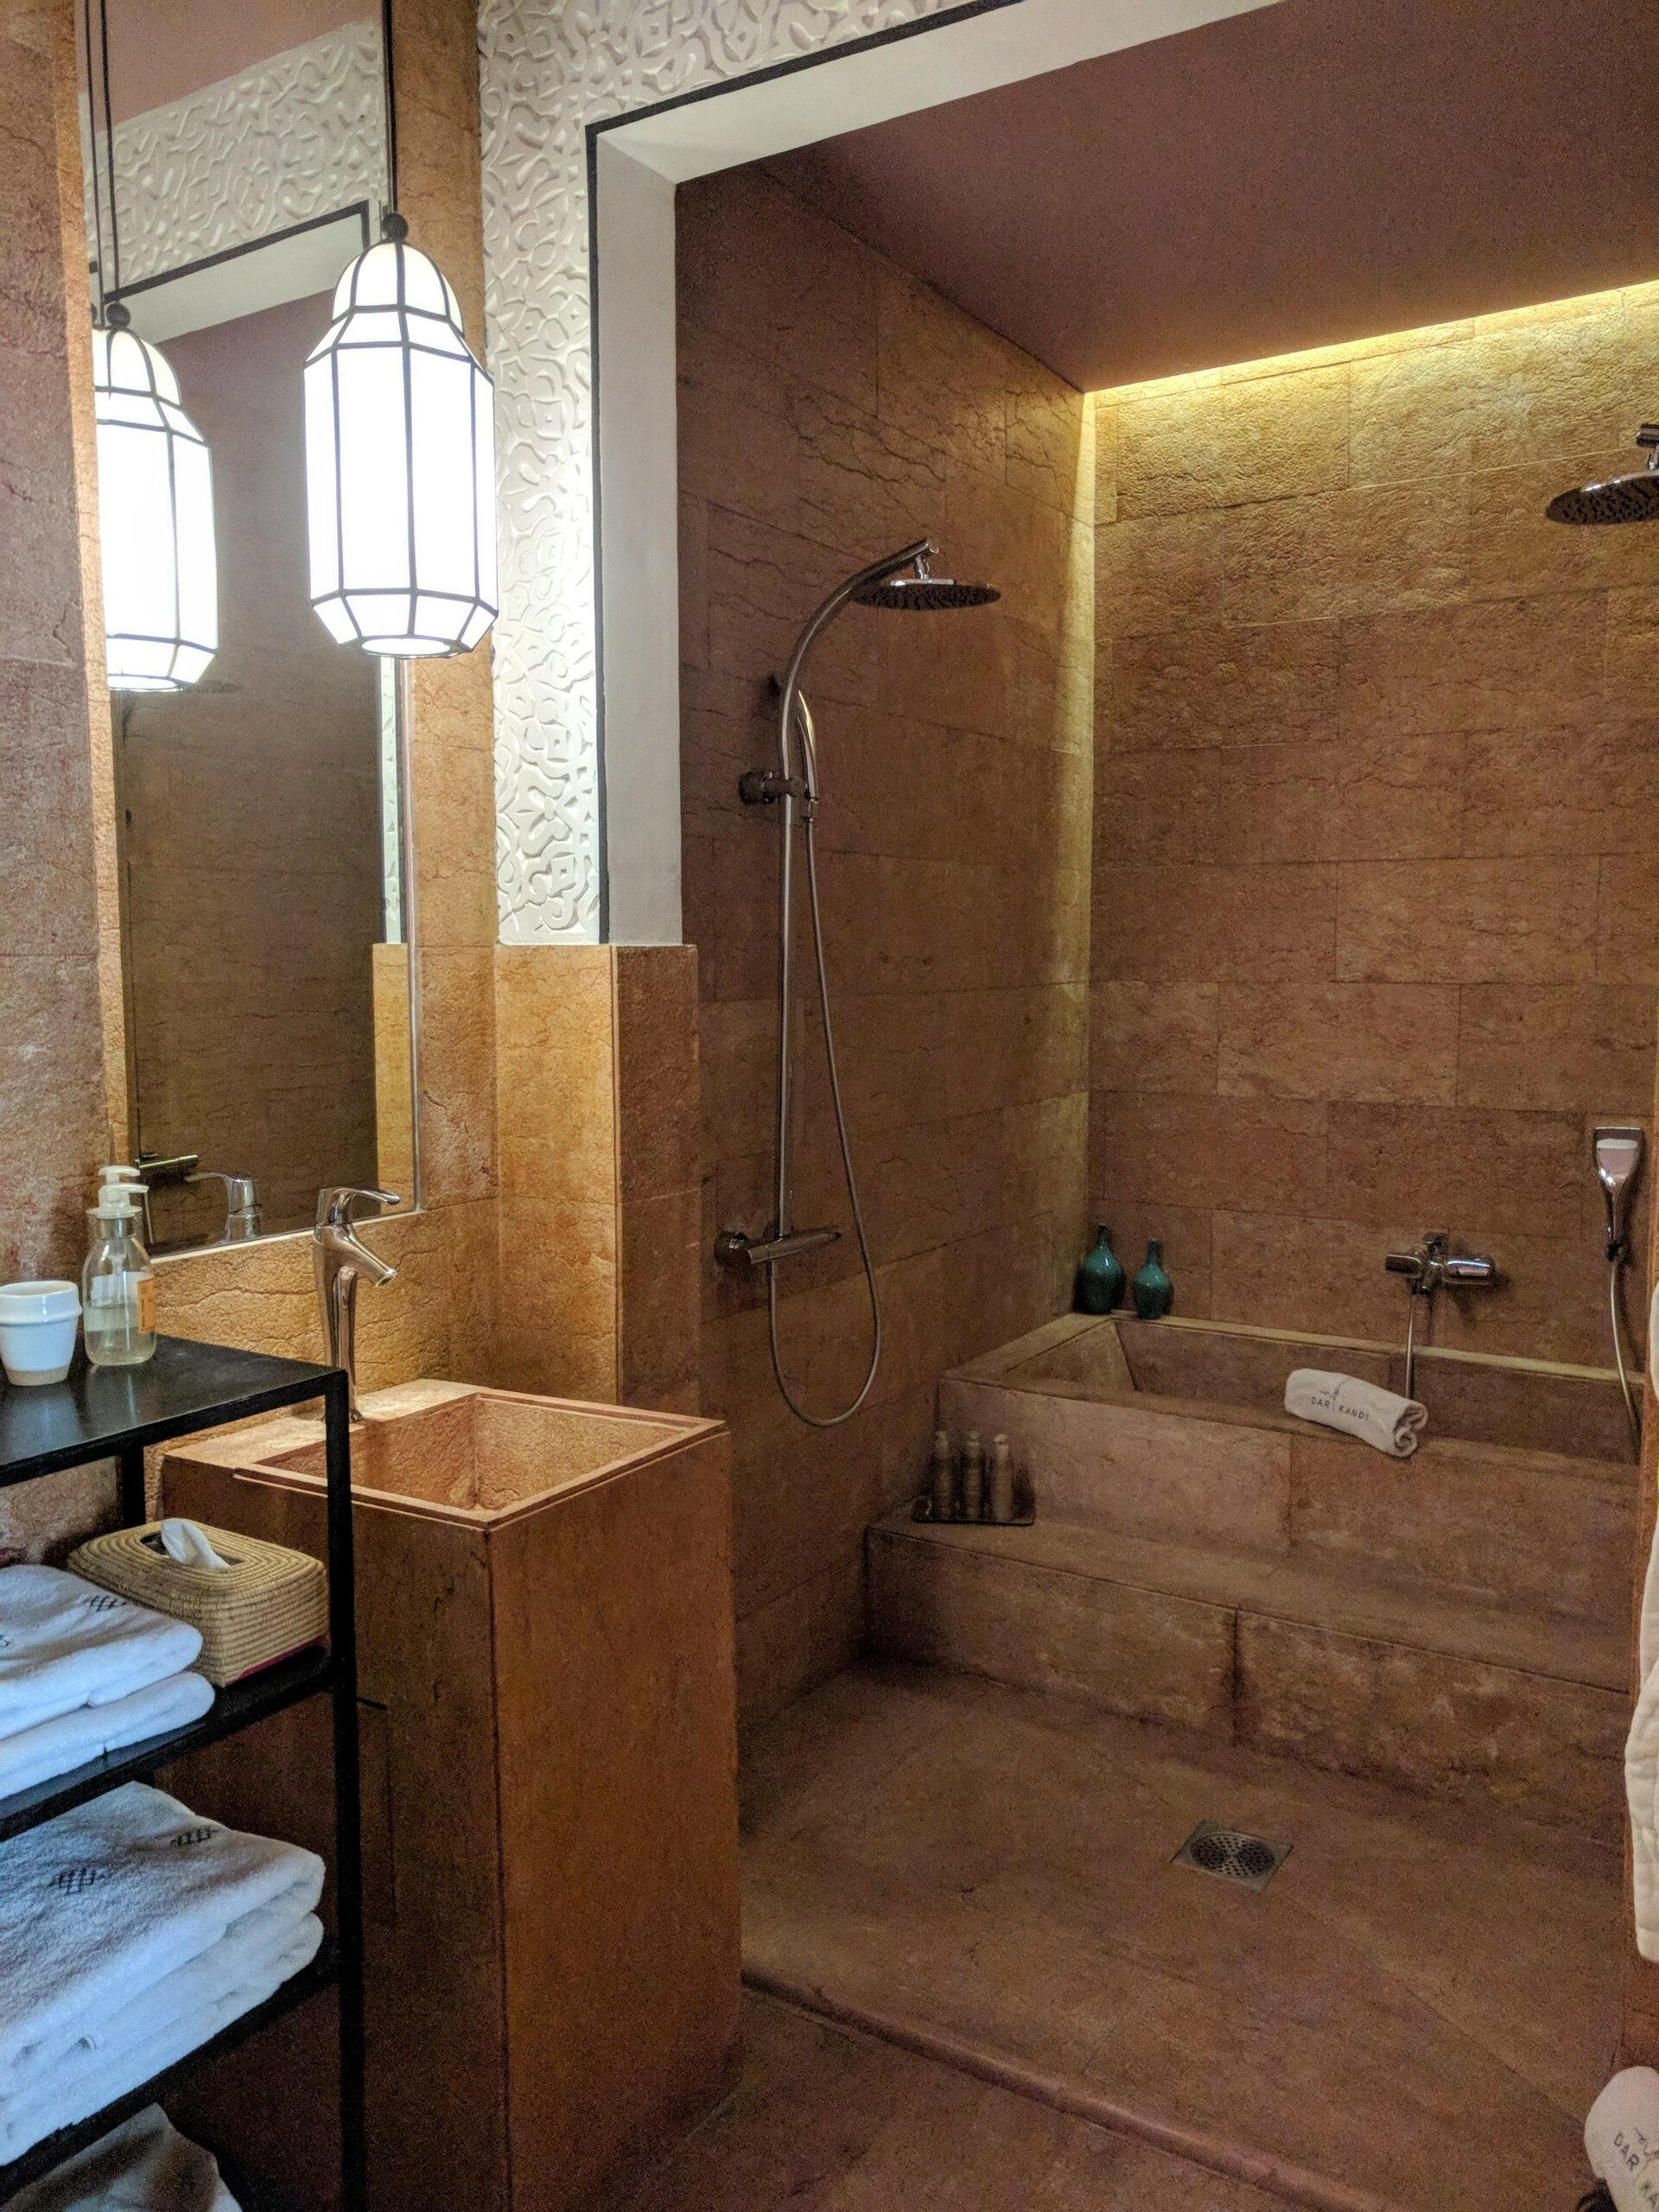 Shower, bath and sink in the bathroom